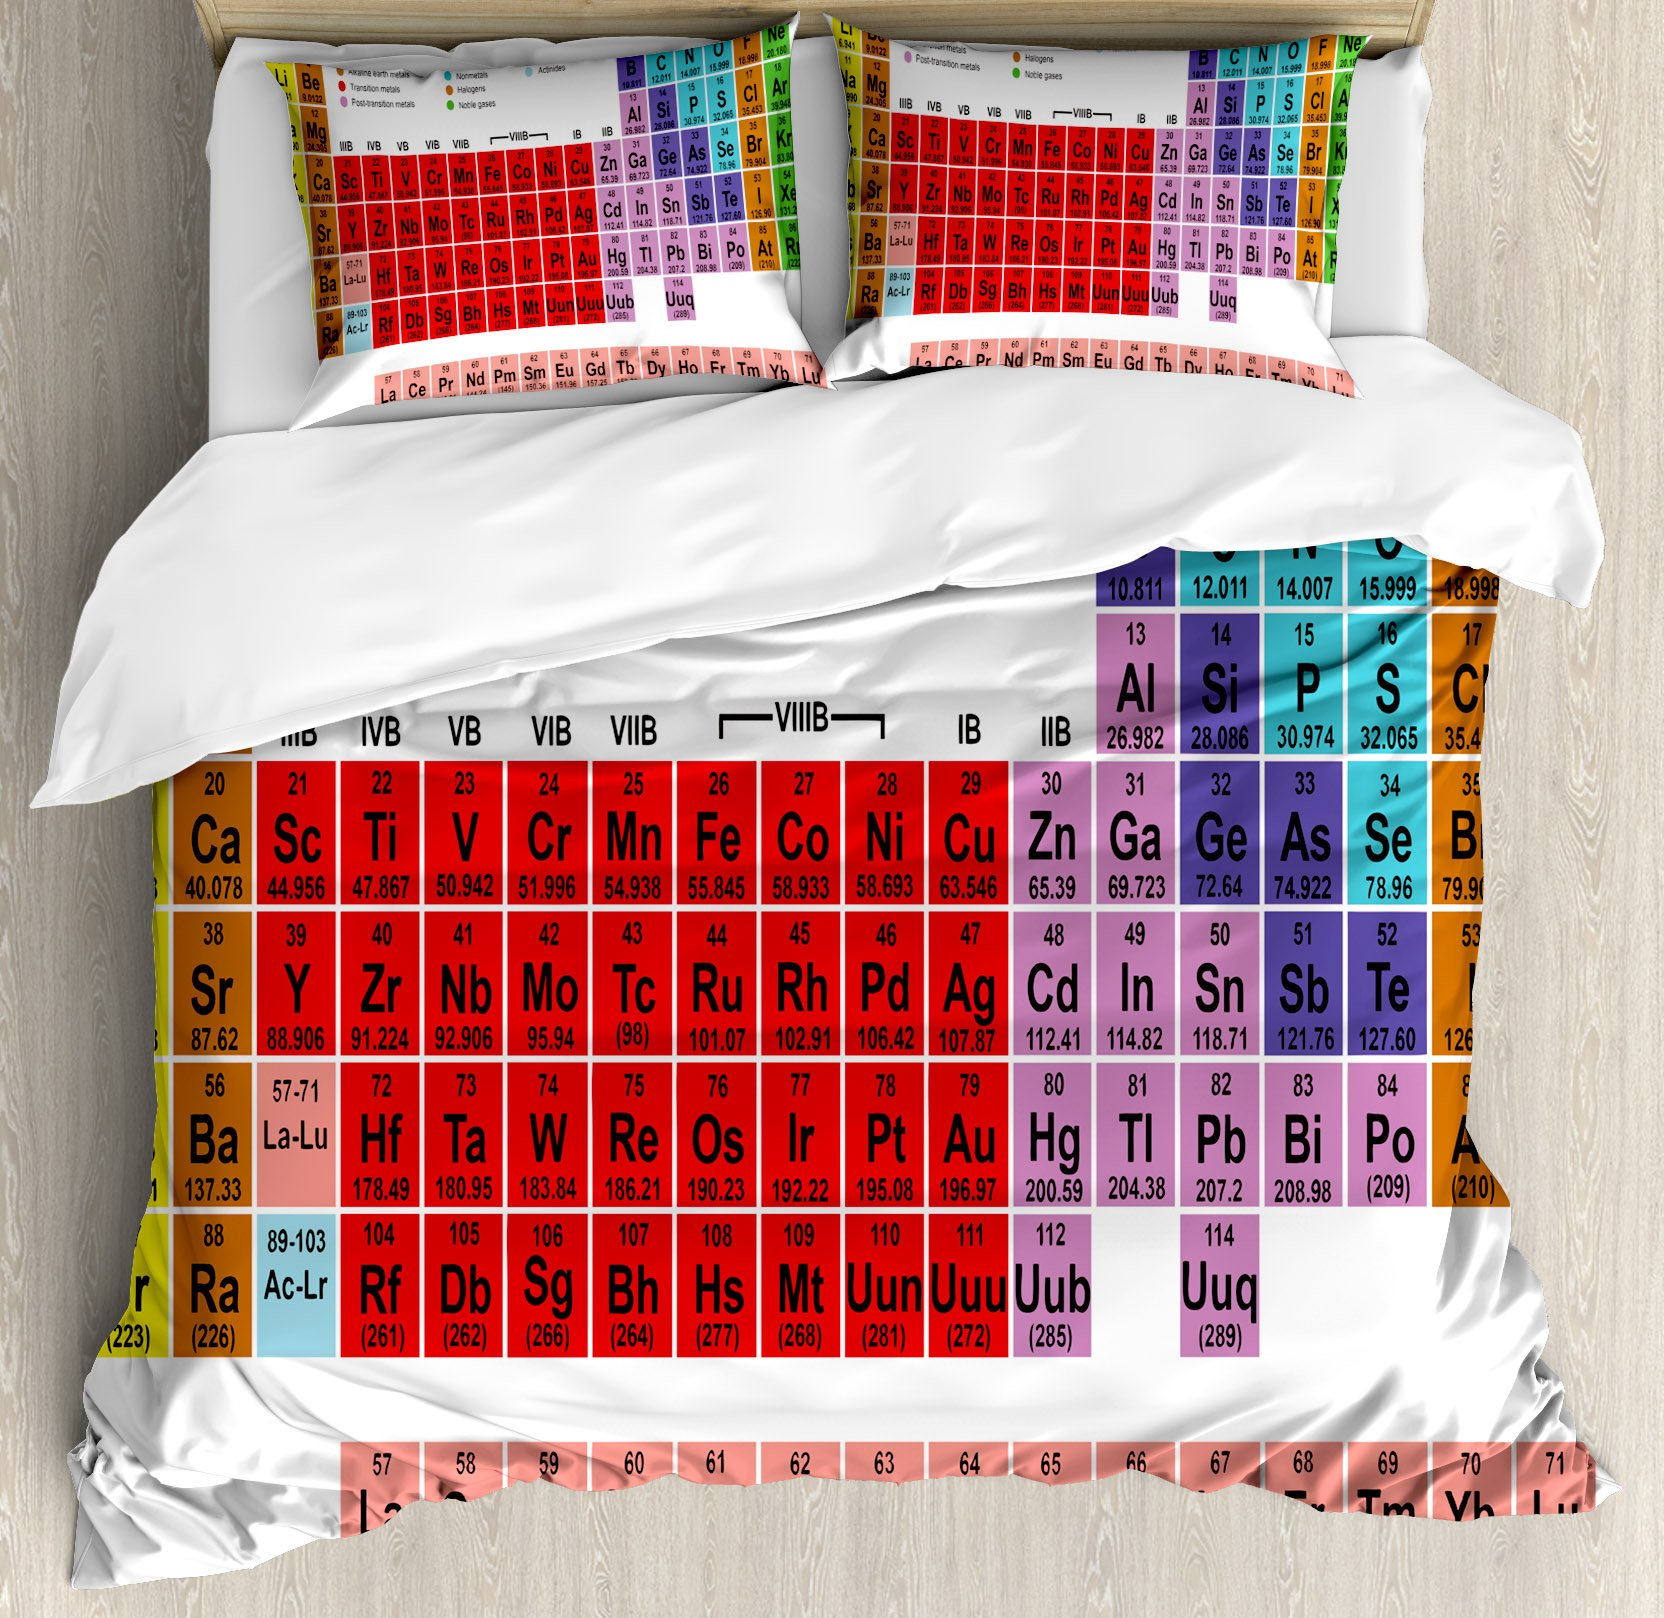 Ambesonne Periodic Table Duvet Cover Set, Kids Children Educational Science Chemistry for School Students Teachers Art, 3 Piece Bedding Set with Pillow Shams, Queen/Full, Multicolor by Ambesonne